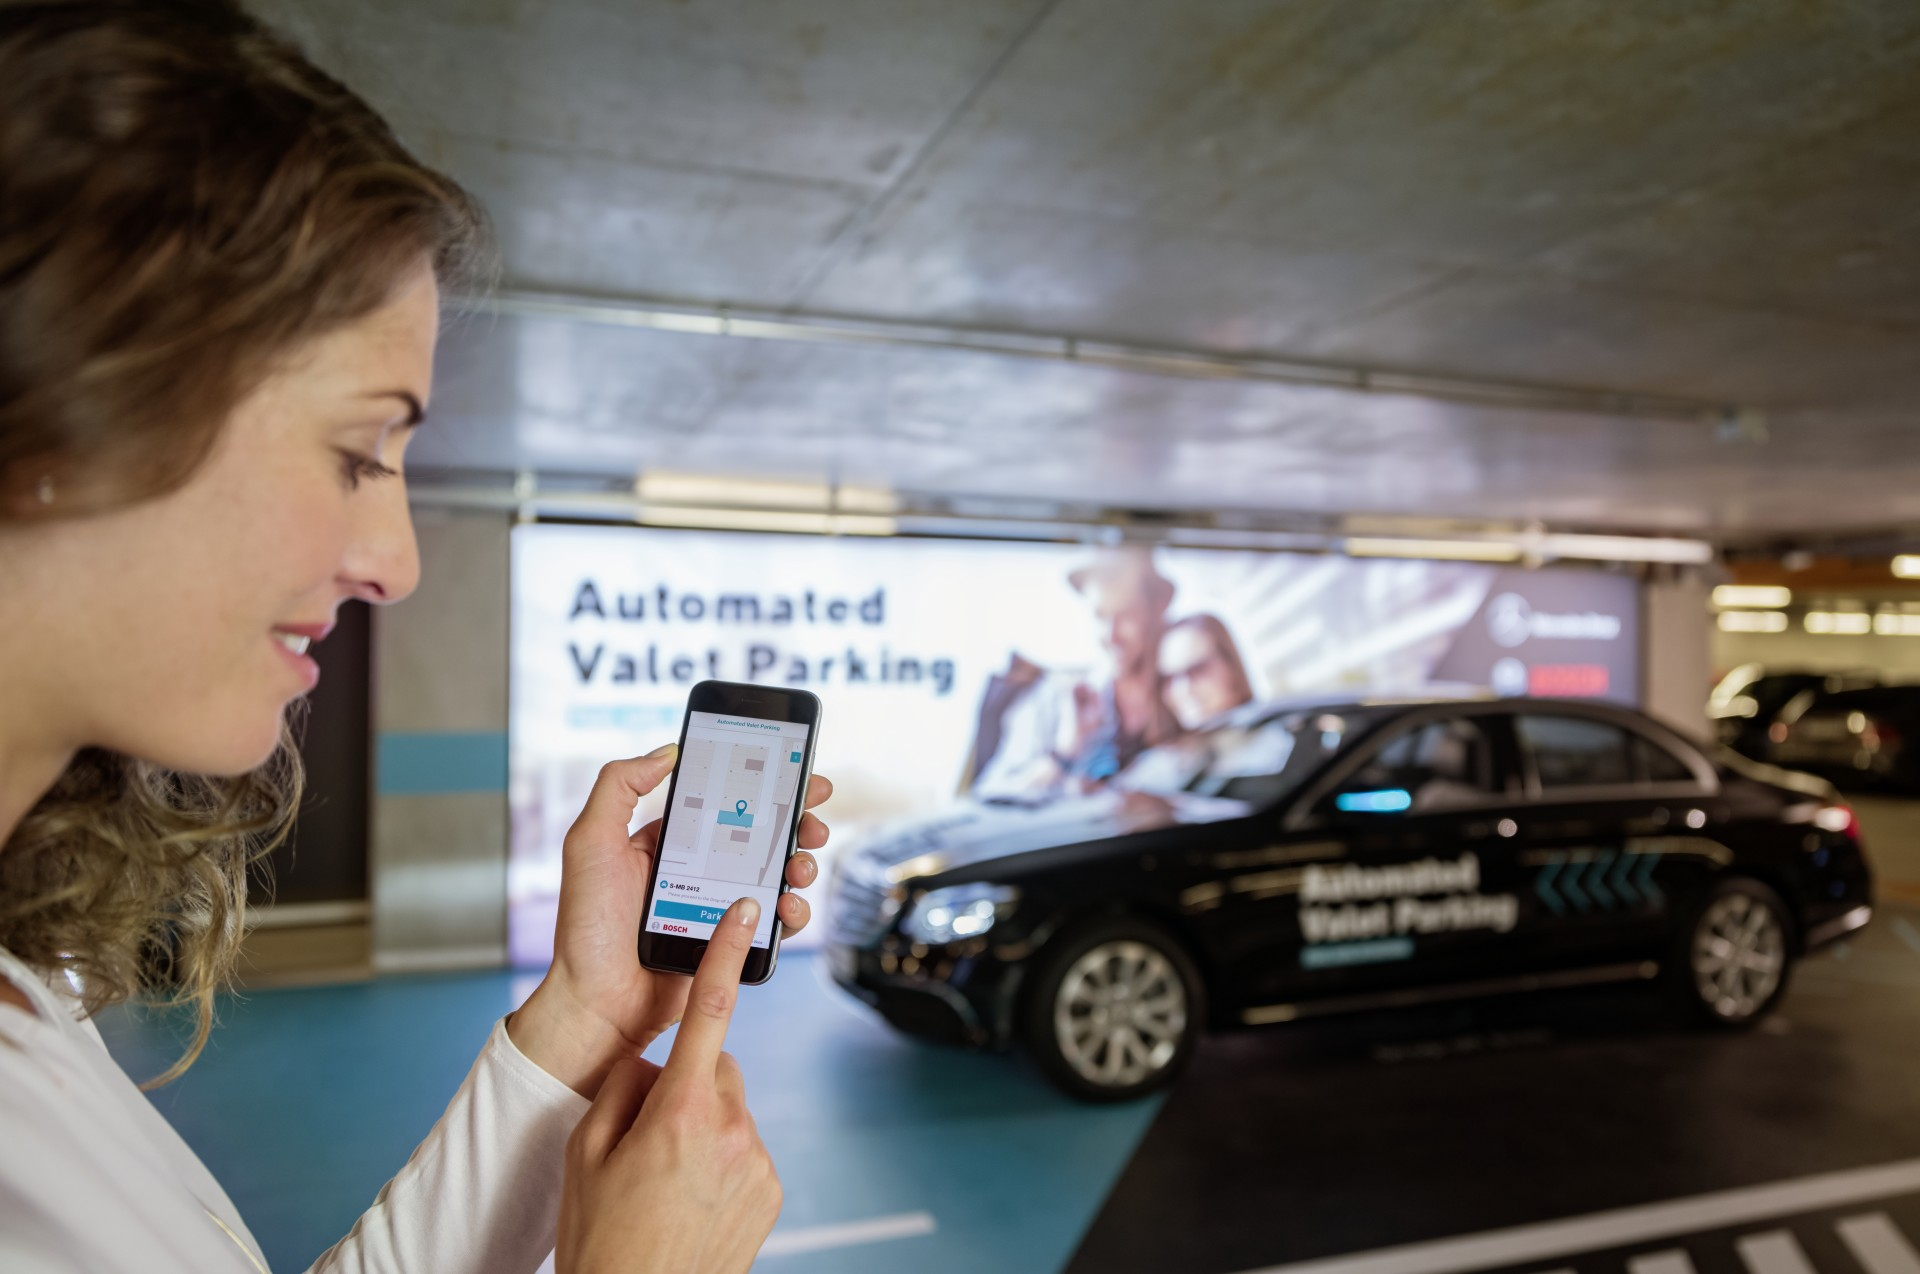 Bosch und Daimler zeigen fahrerloses Parken im realen Verkehr: Weltpremiere im Parkhaus des Mercedes-Benz MuseumsBosch and Daimler demonstrate driverless parking in real-life traffic: World premiere in the multi-storey car park of the Mercedes Benz Museu